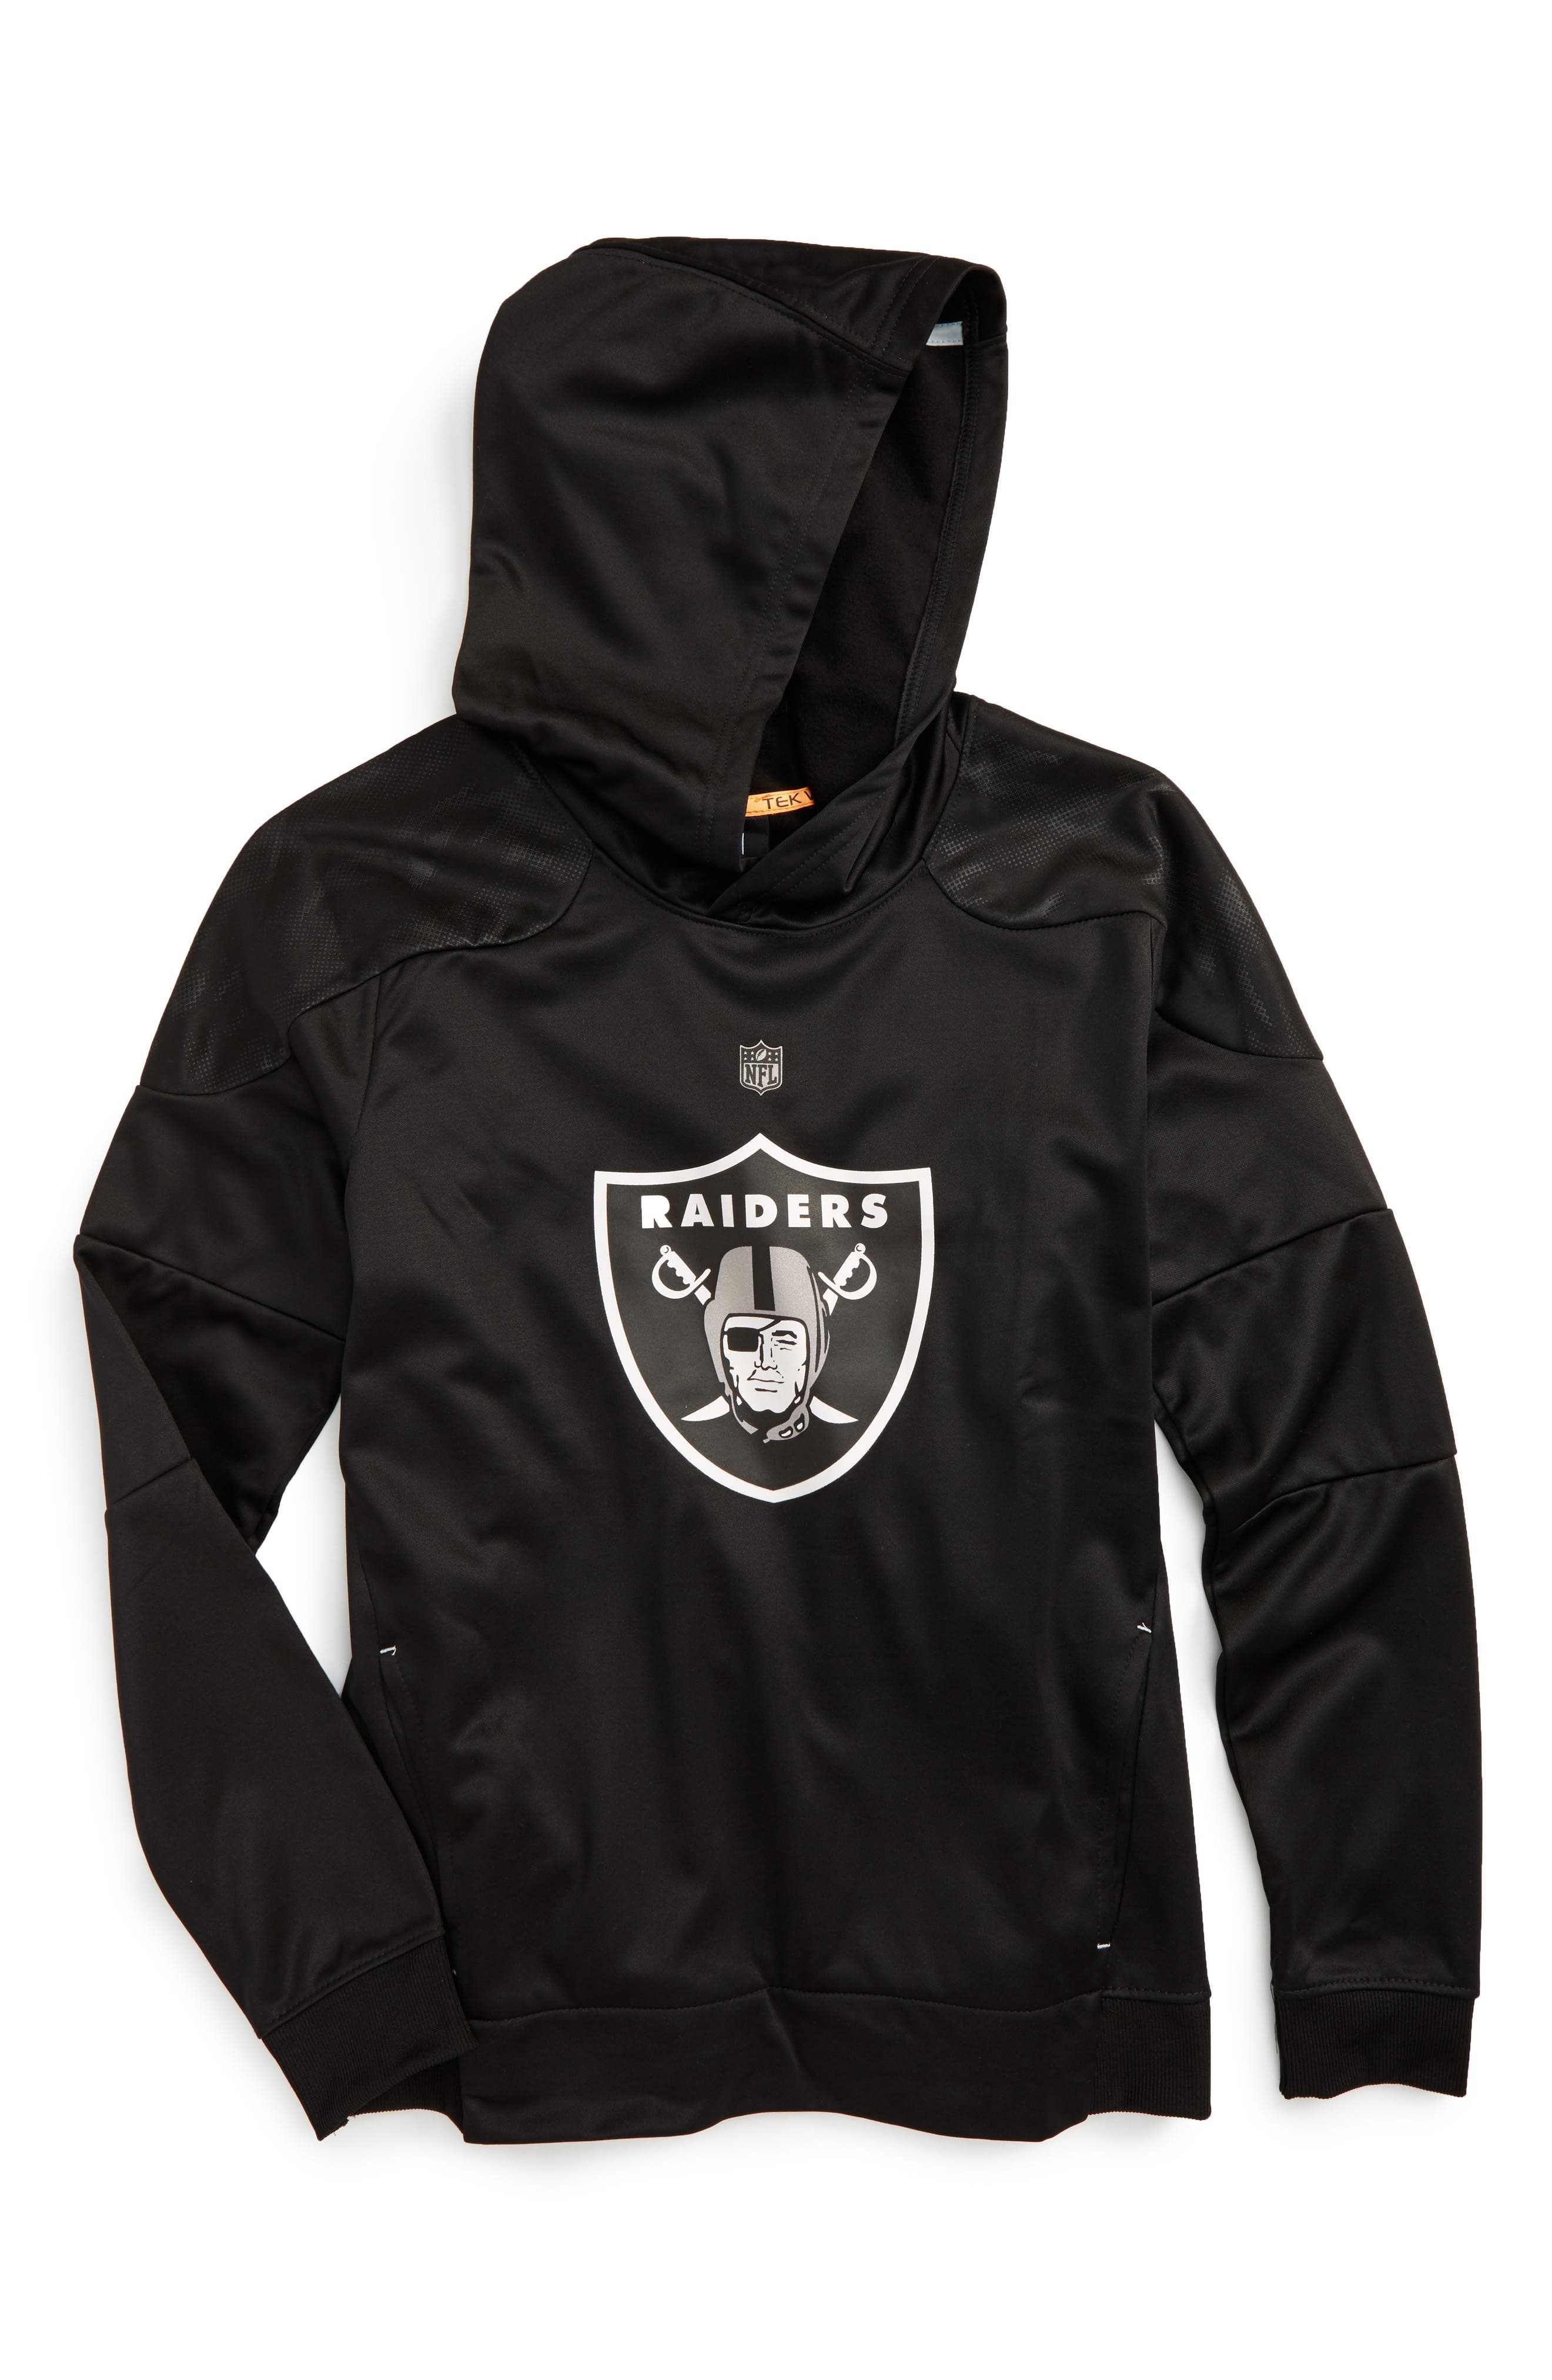 Main Image - Outerstuff NFL Oakland Raiders Hoodie (Big Boys)